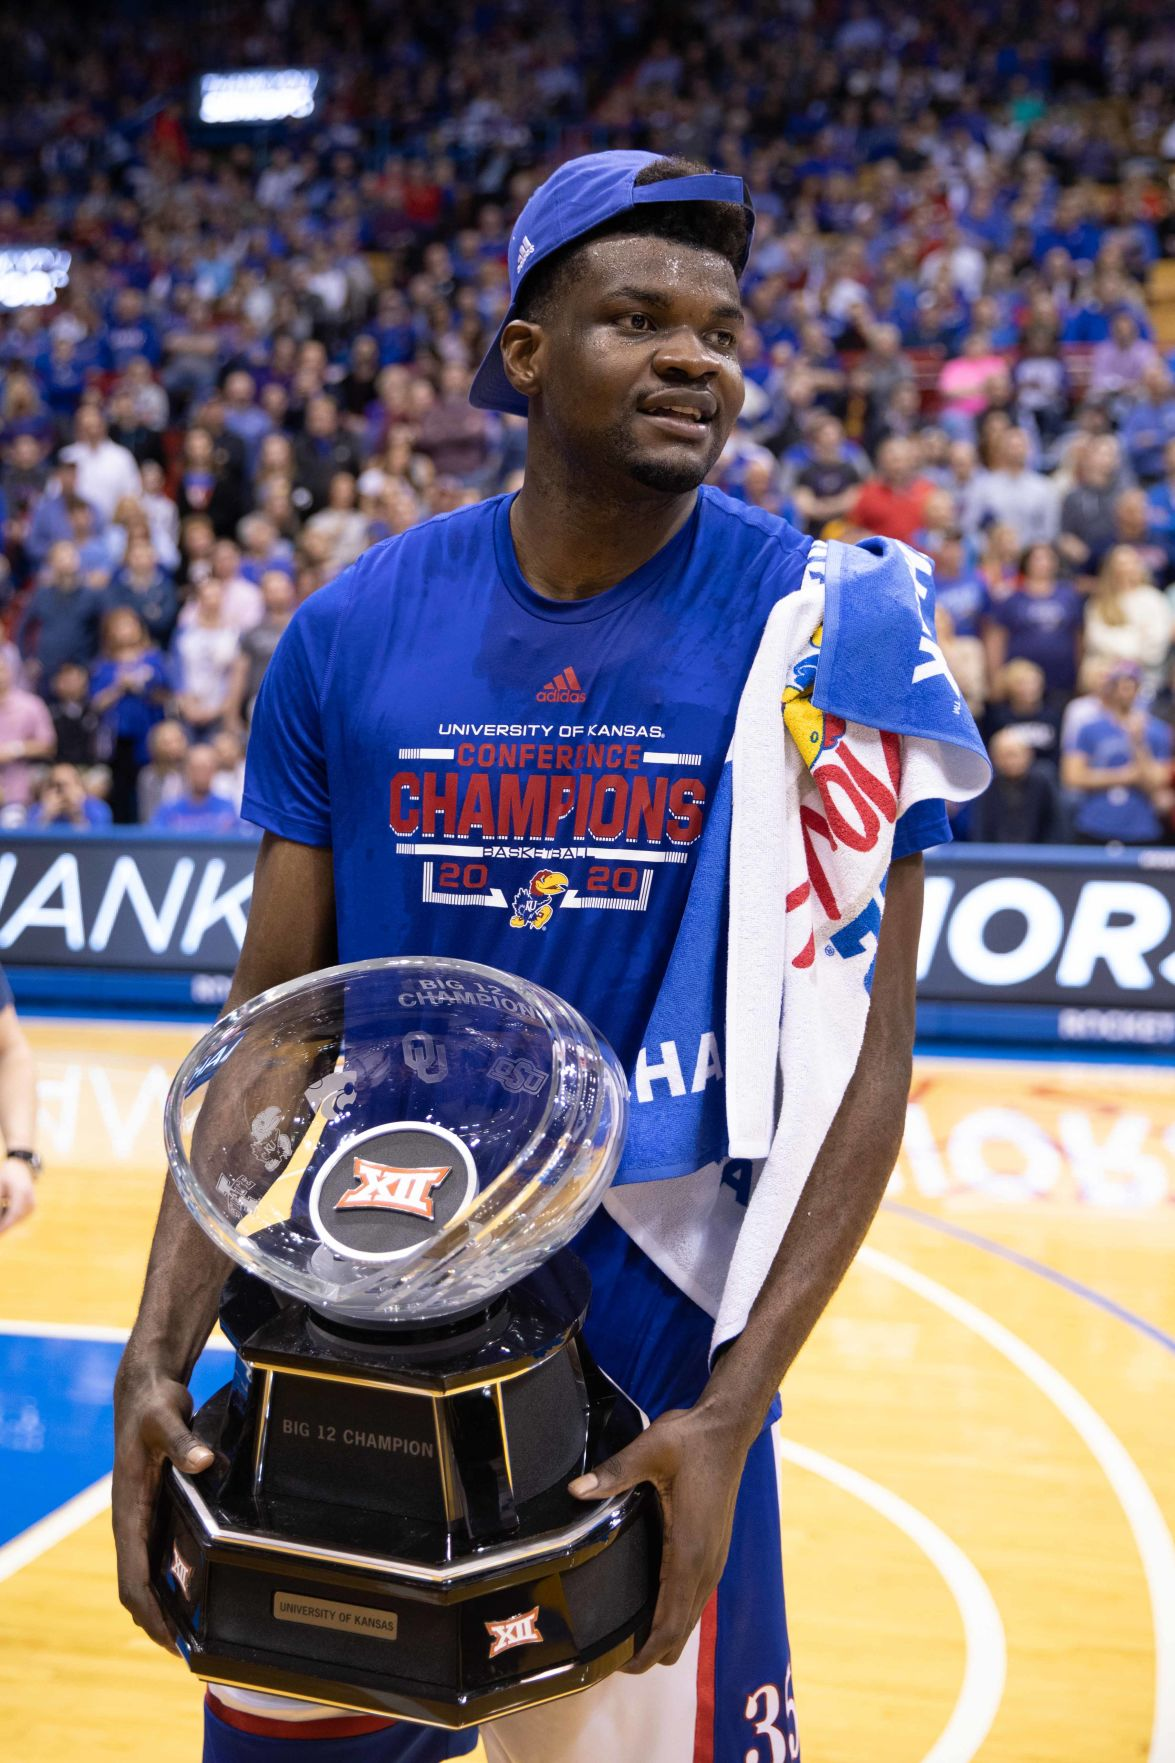 Udoka Azubuike holds the Big 12 Championship trophy on the court in Allen Fieldhouse